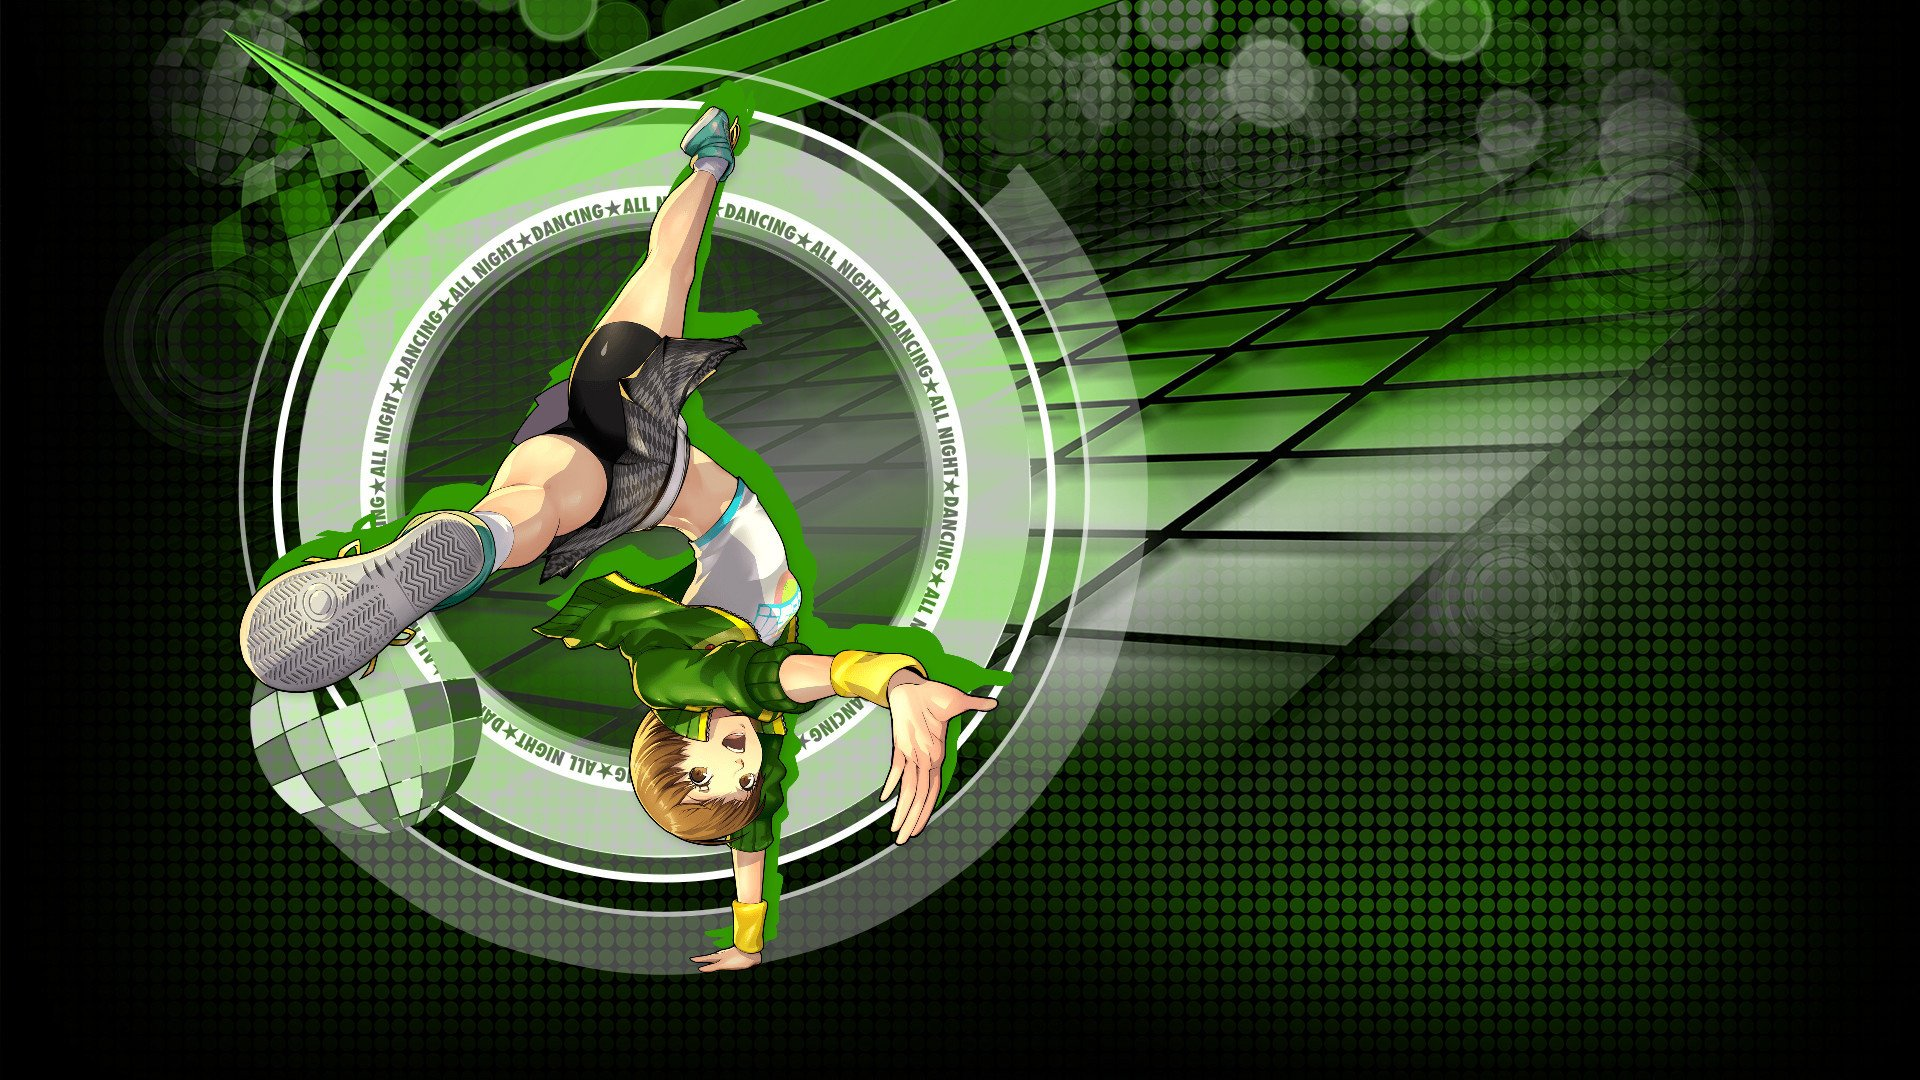 Chie Dance Hd Wallpaper Background Image 1920x1080 Id